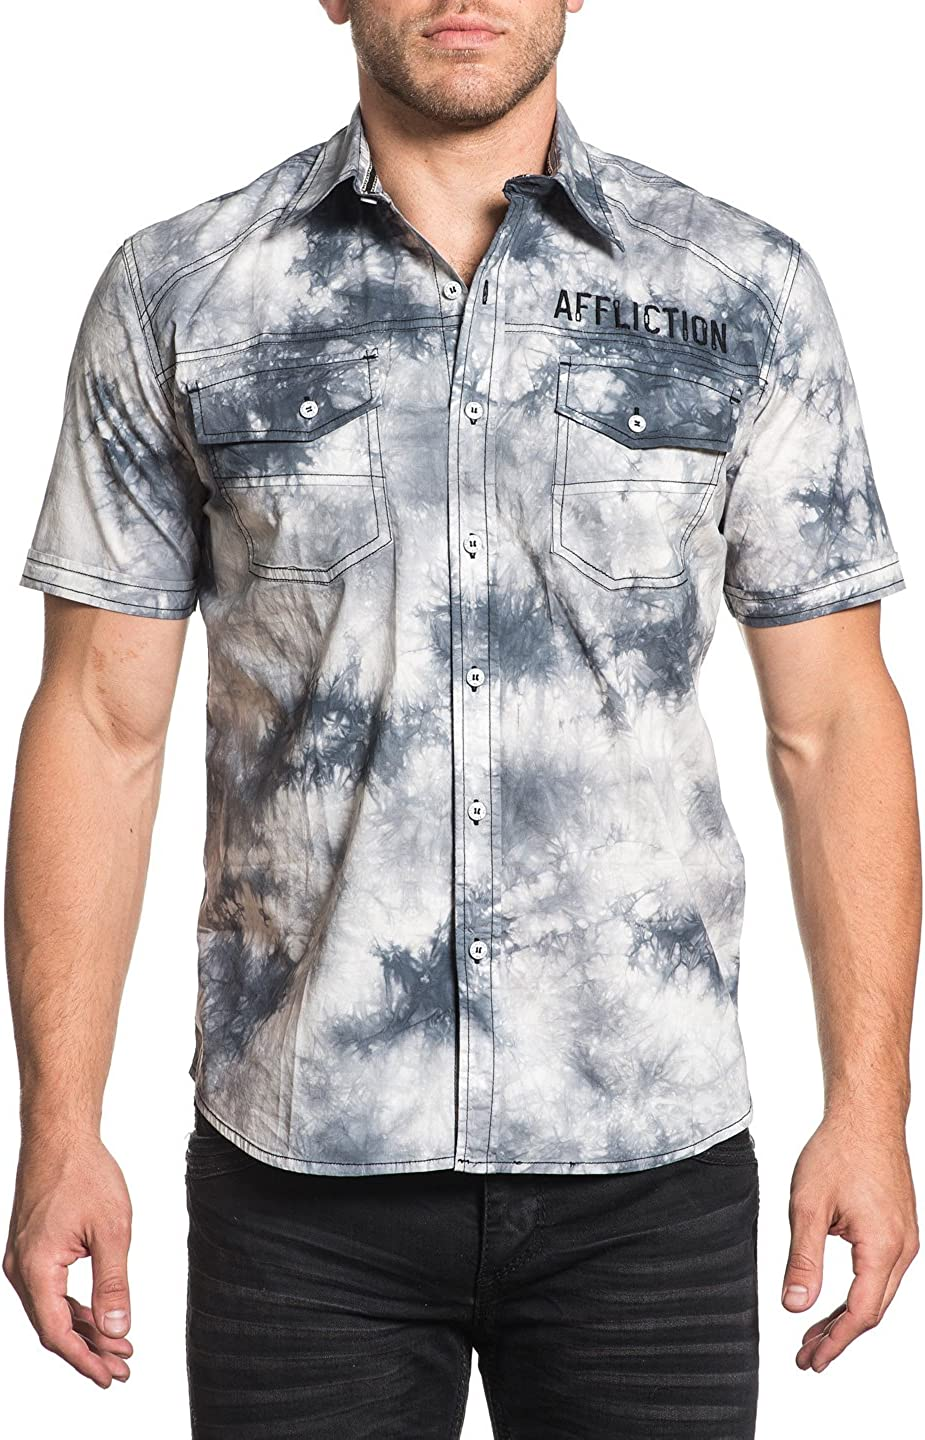 Affliction Flywheel Short Sleeve Easy-to-use Button Down Shirt for Men Woven New life